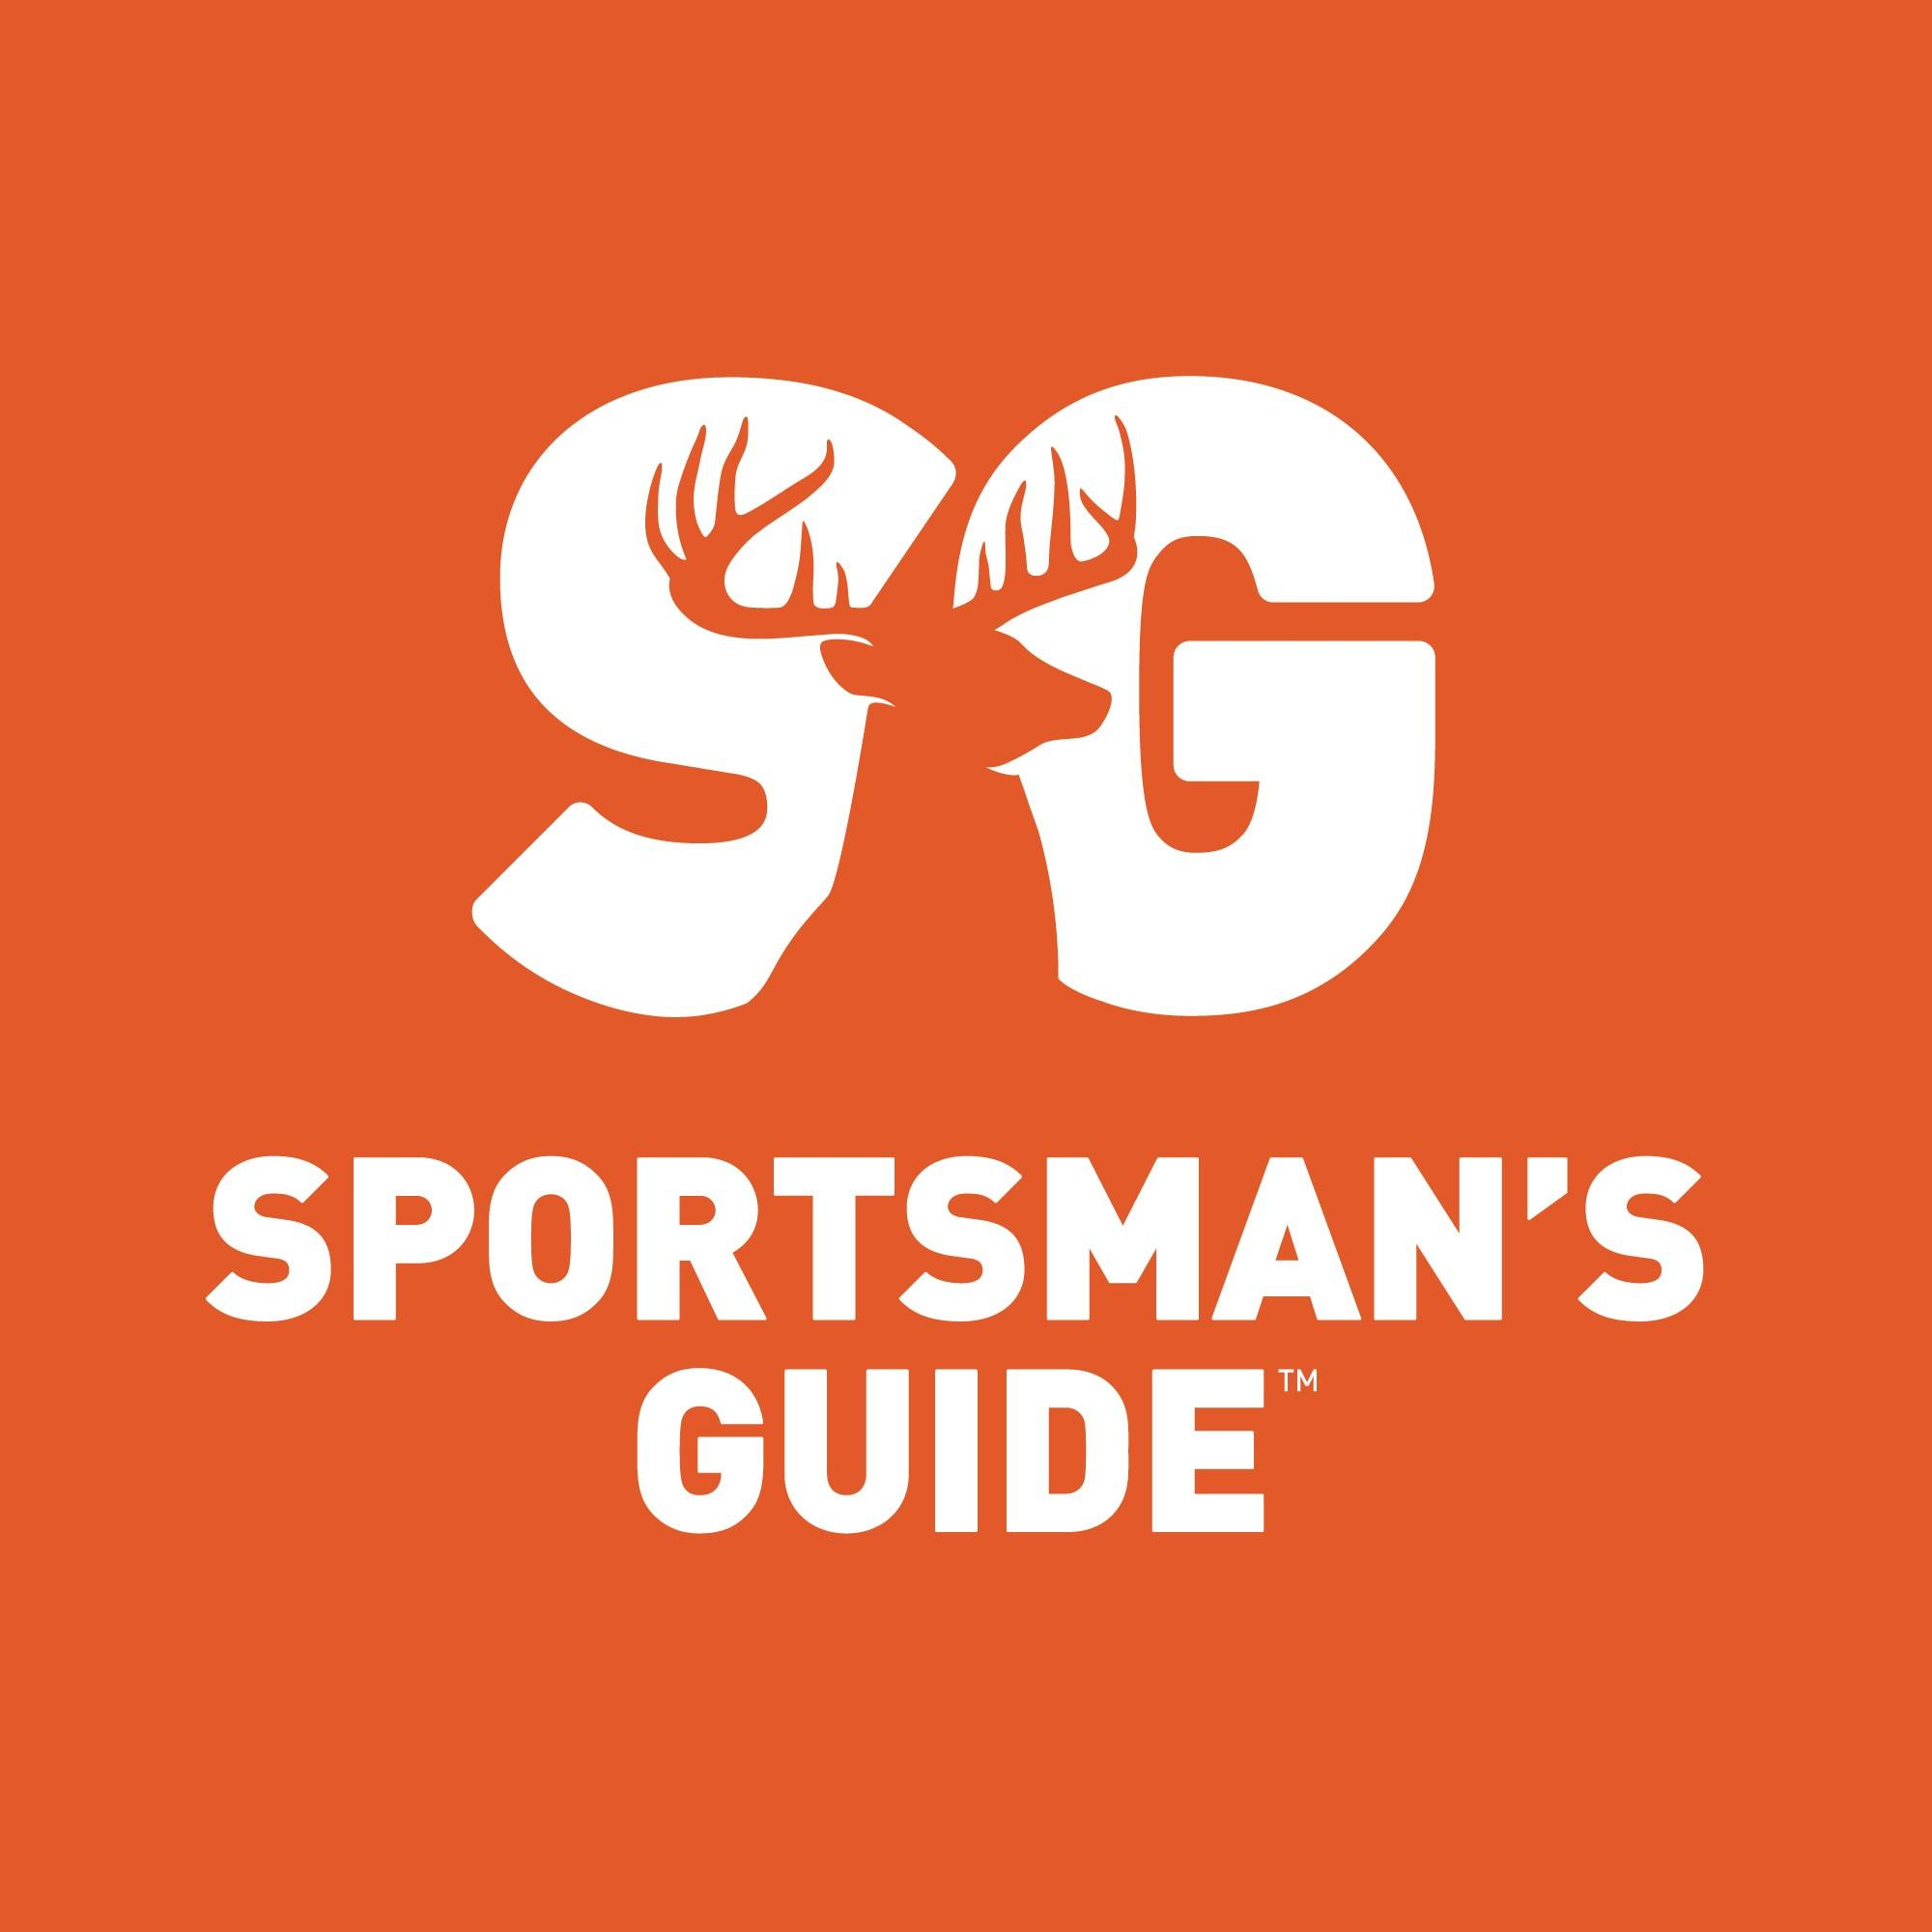 Sportsmans Guide Partners With Pursuit Channel Guide